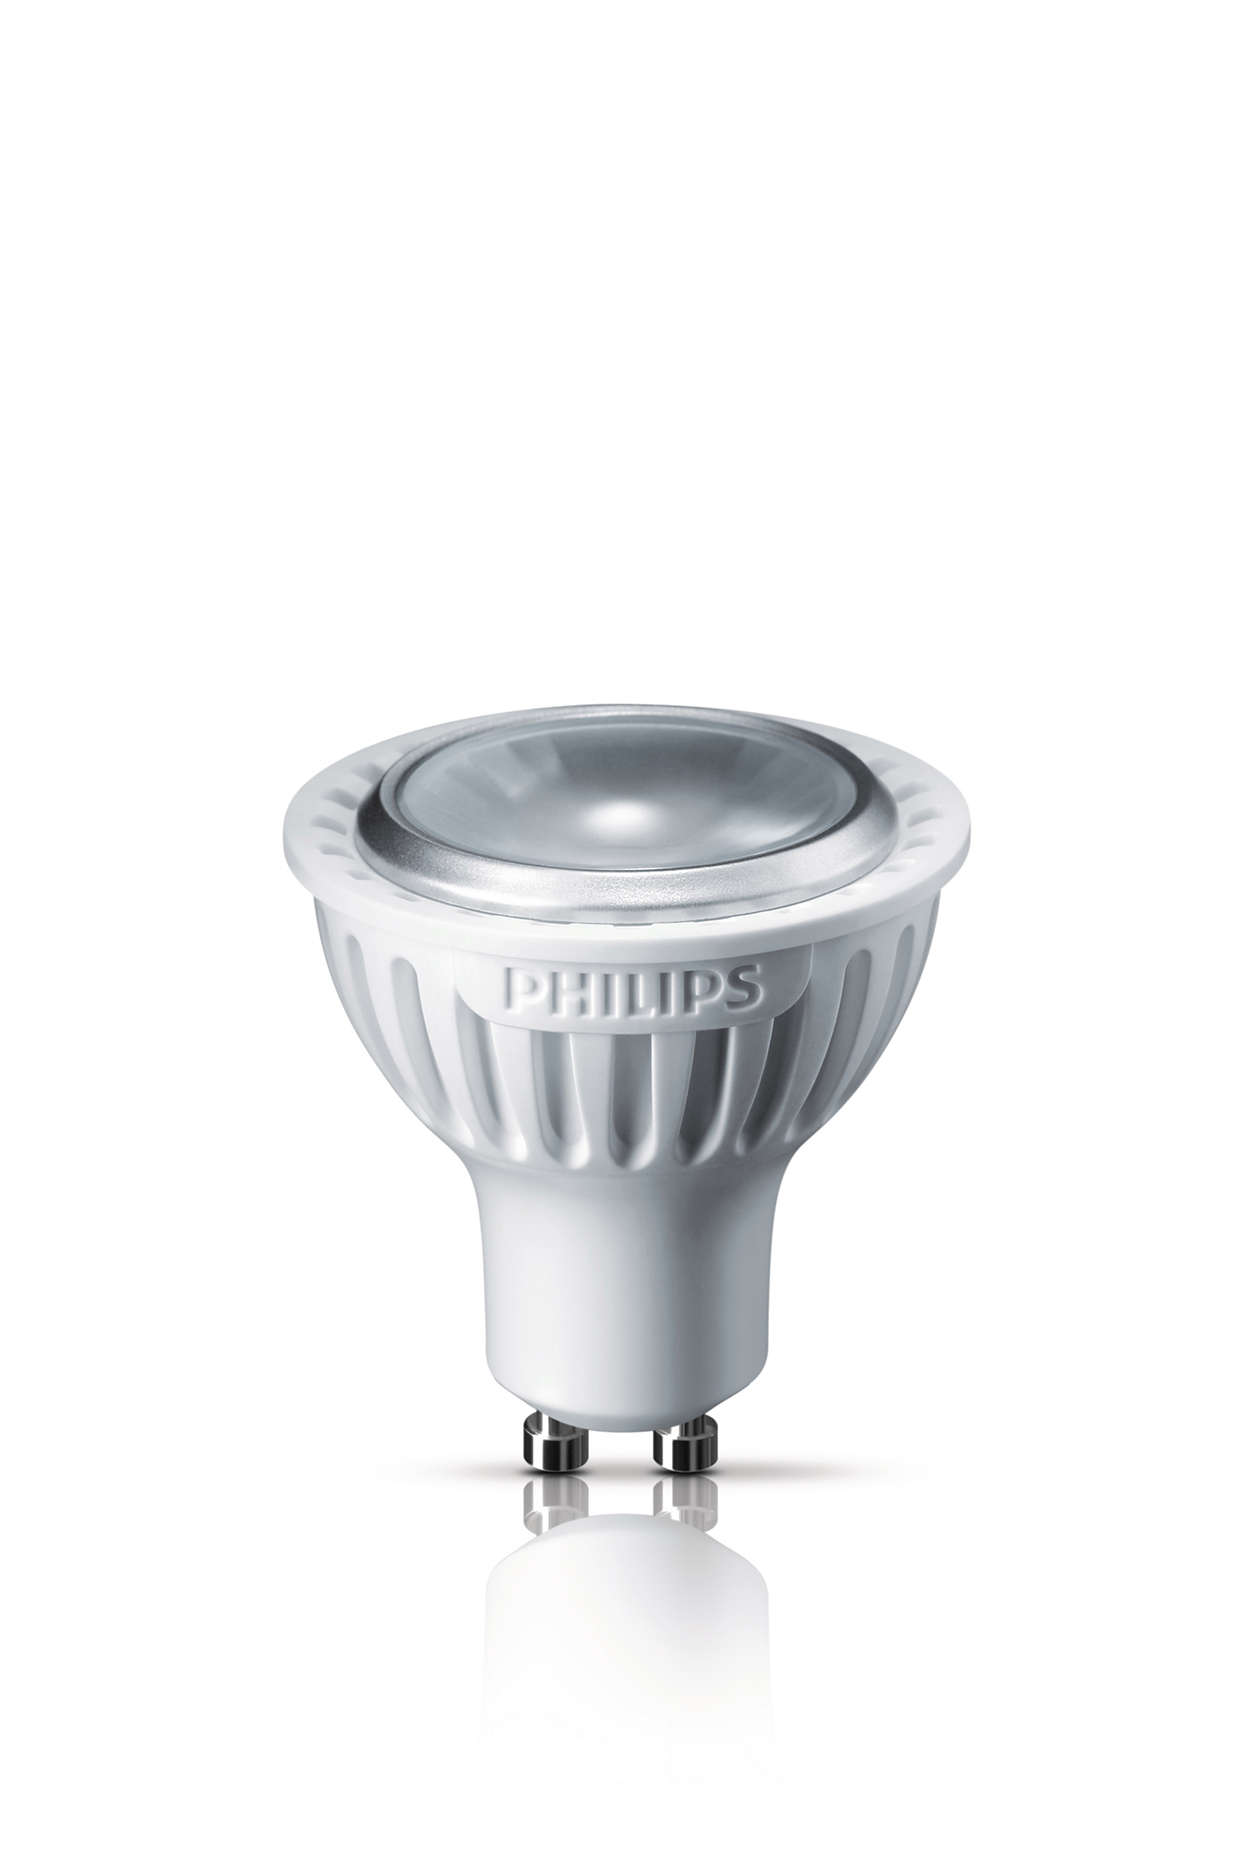 Ultimate light quality, highest energy saving